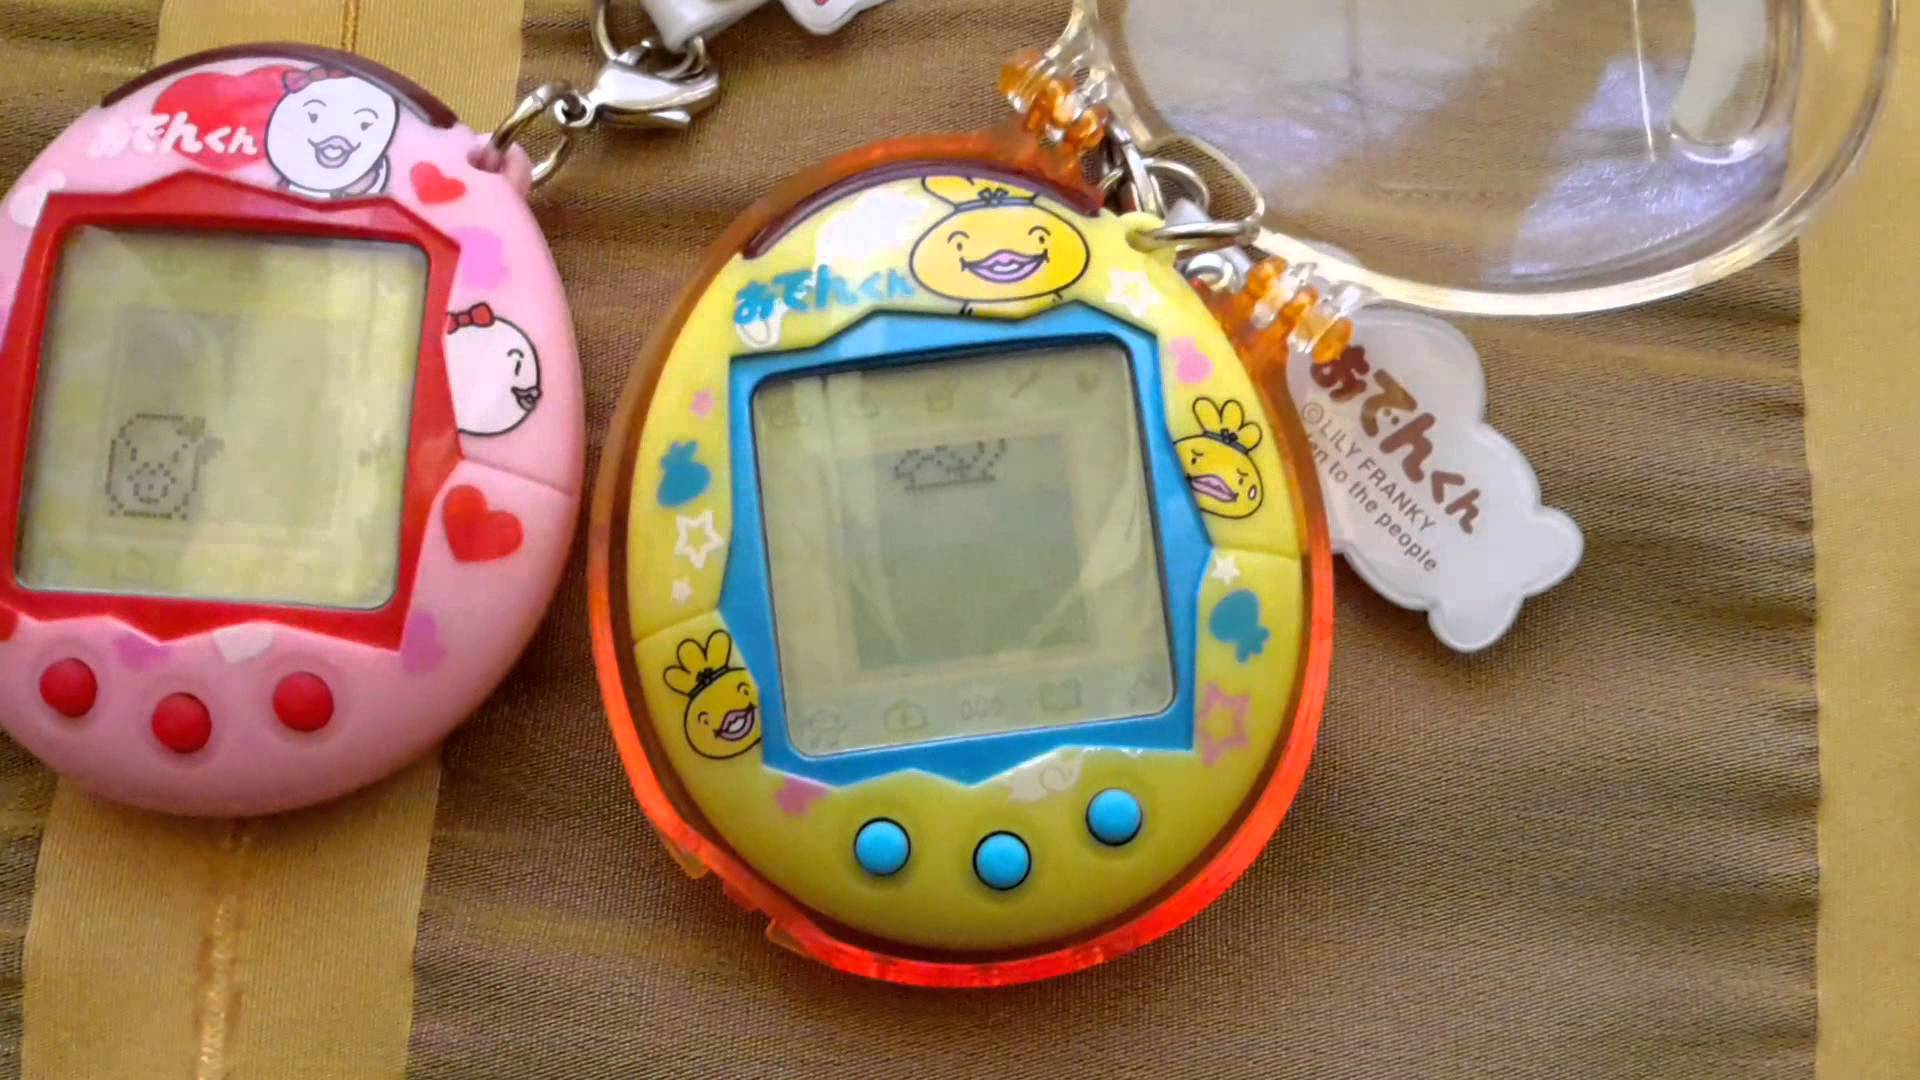 tamagotchis-will-be-back-in-stores-this-november-social.jpg